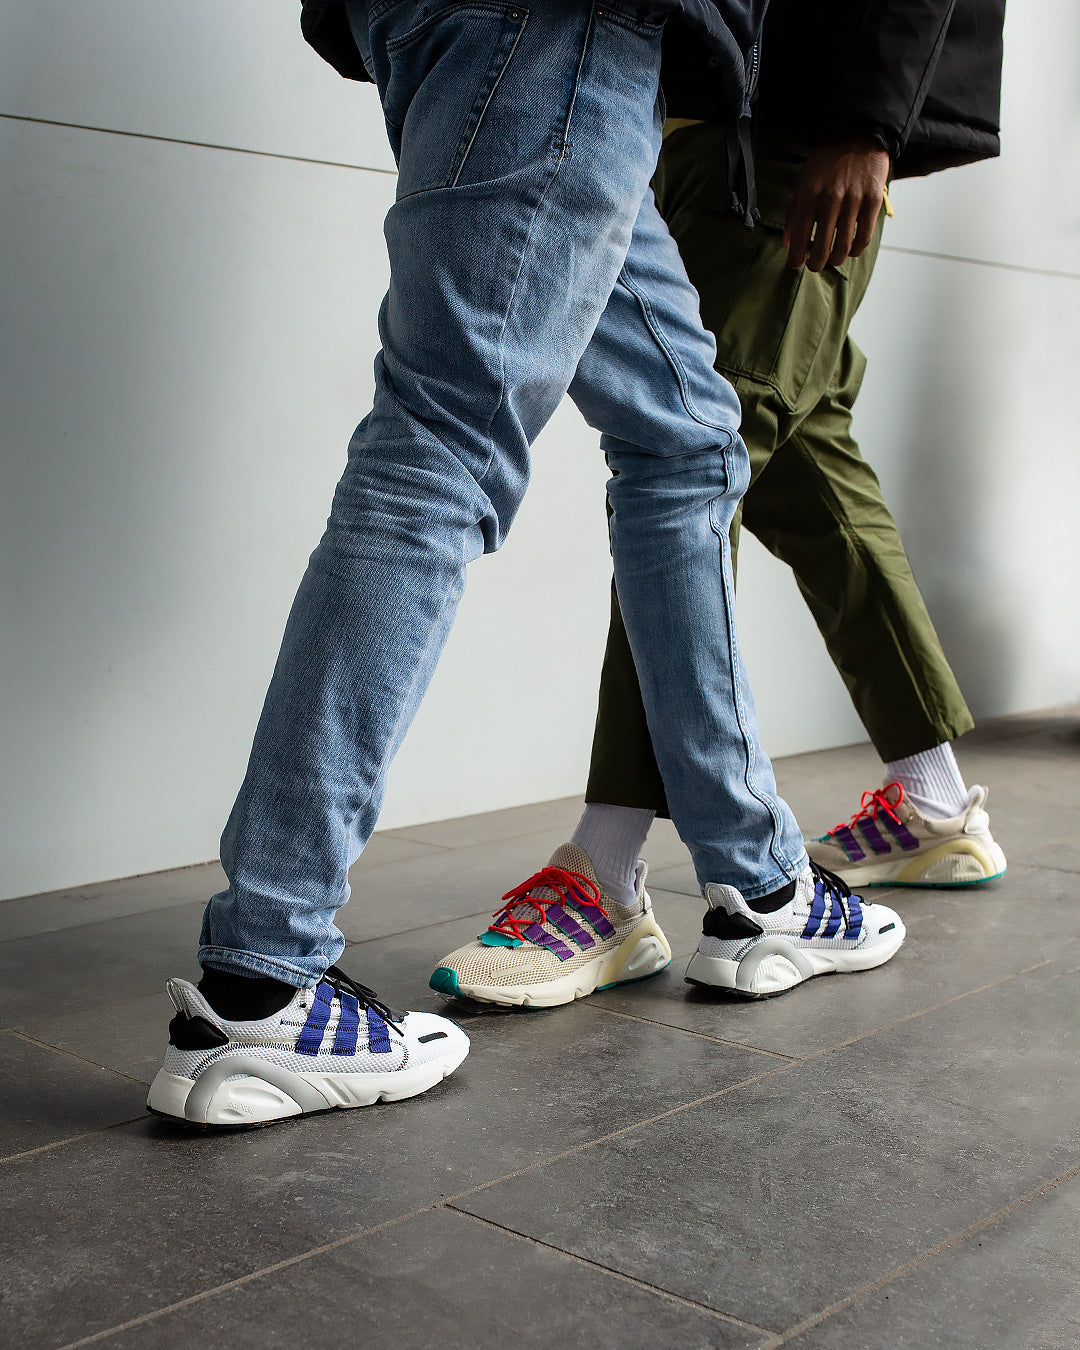 adidas lxcon outfit